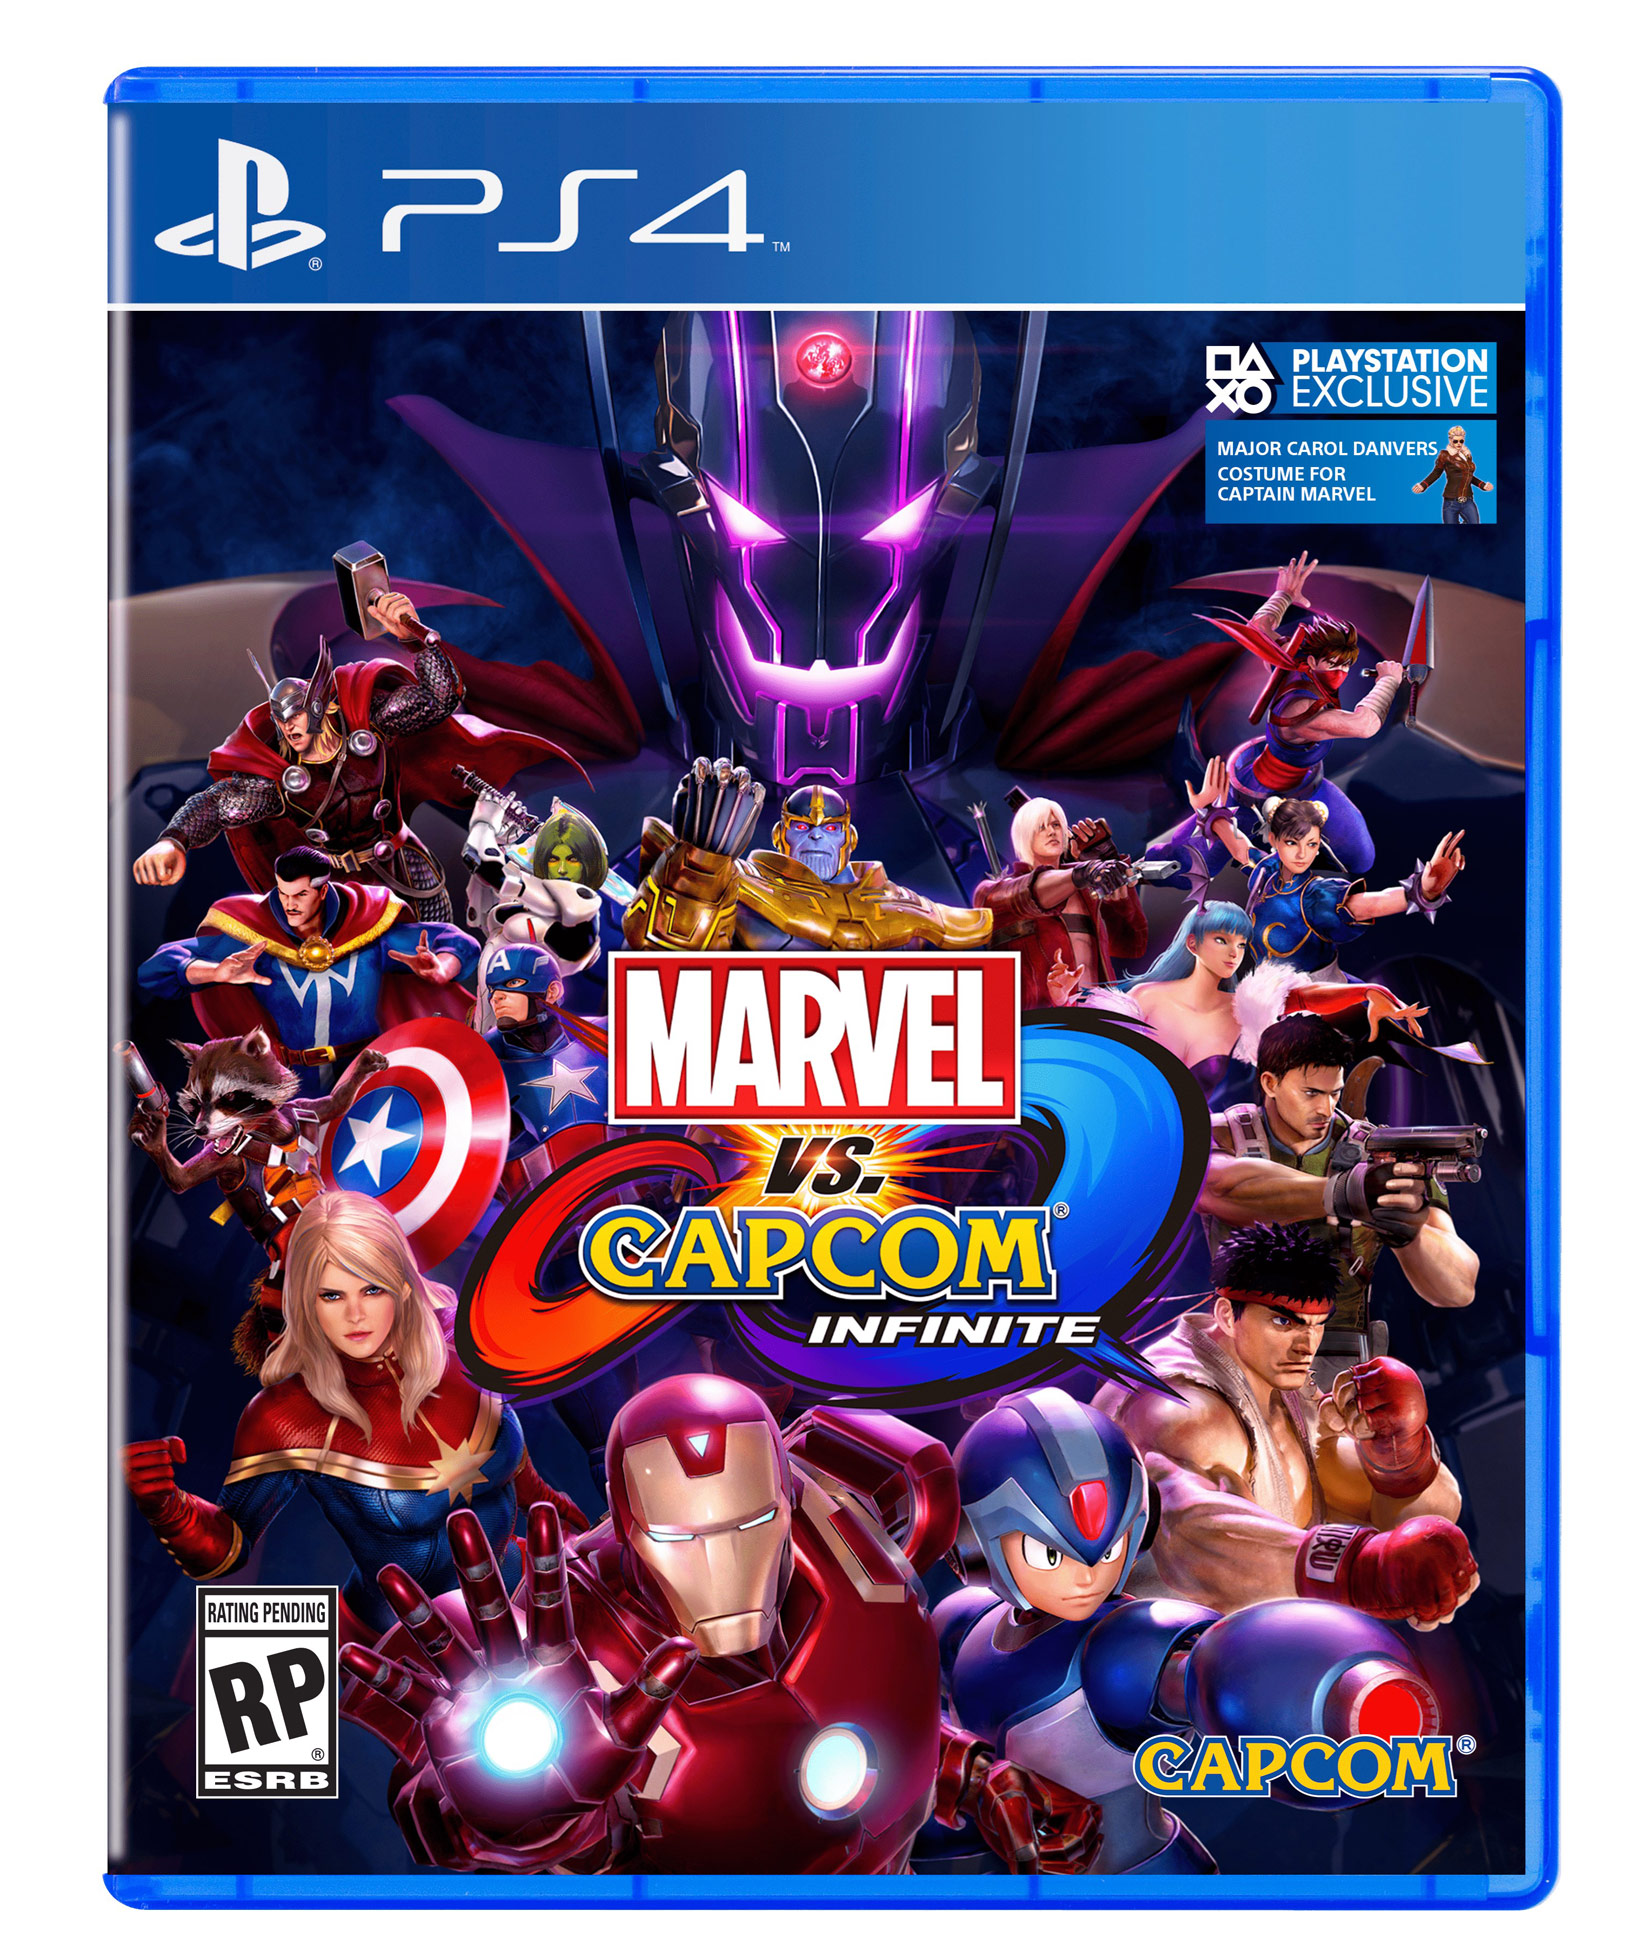 12_mvci2017e3screenshotsartwork25.jpg